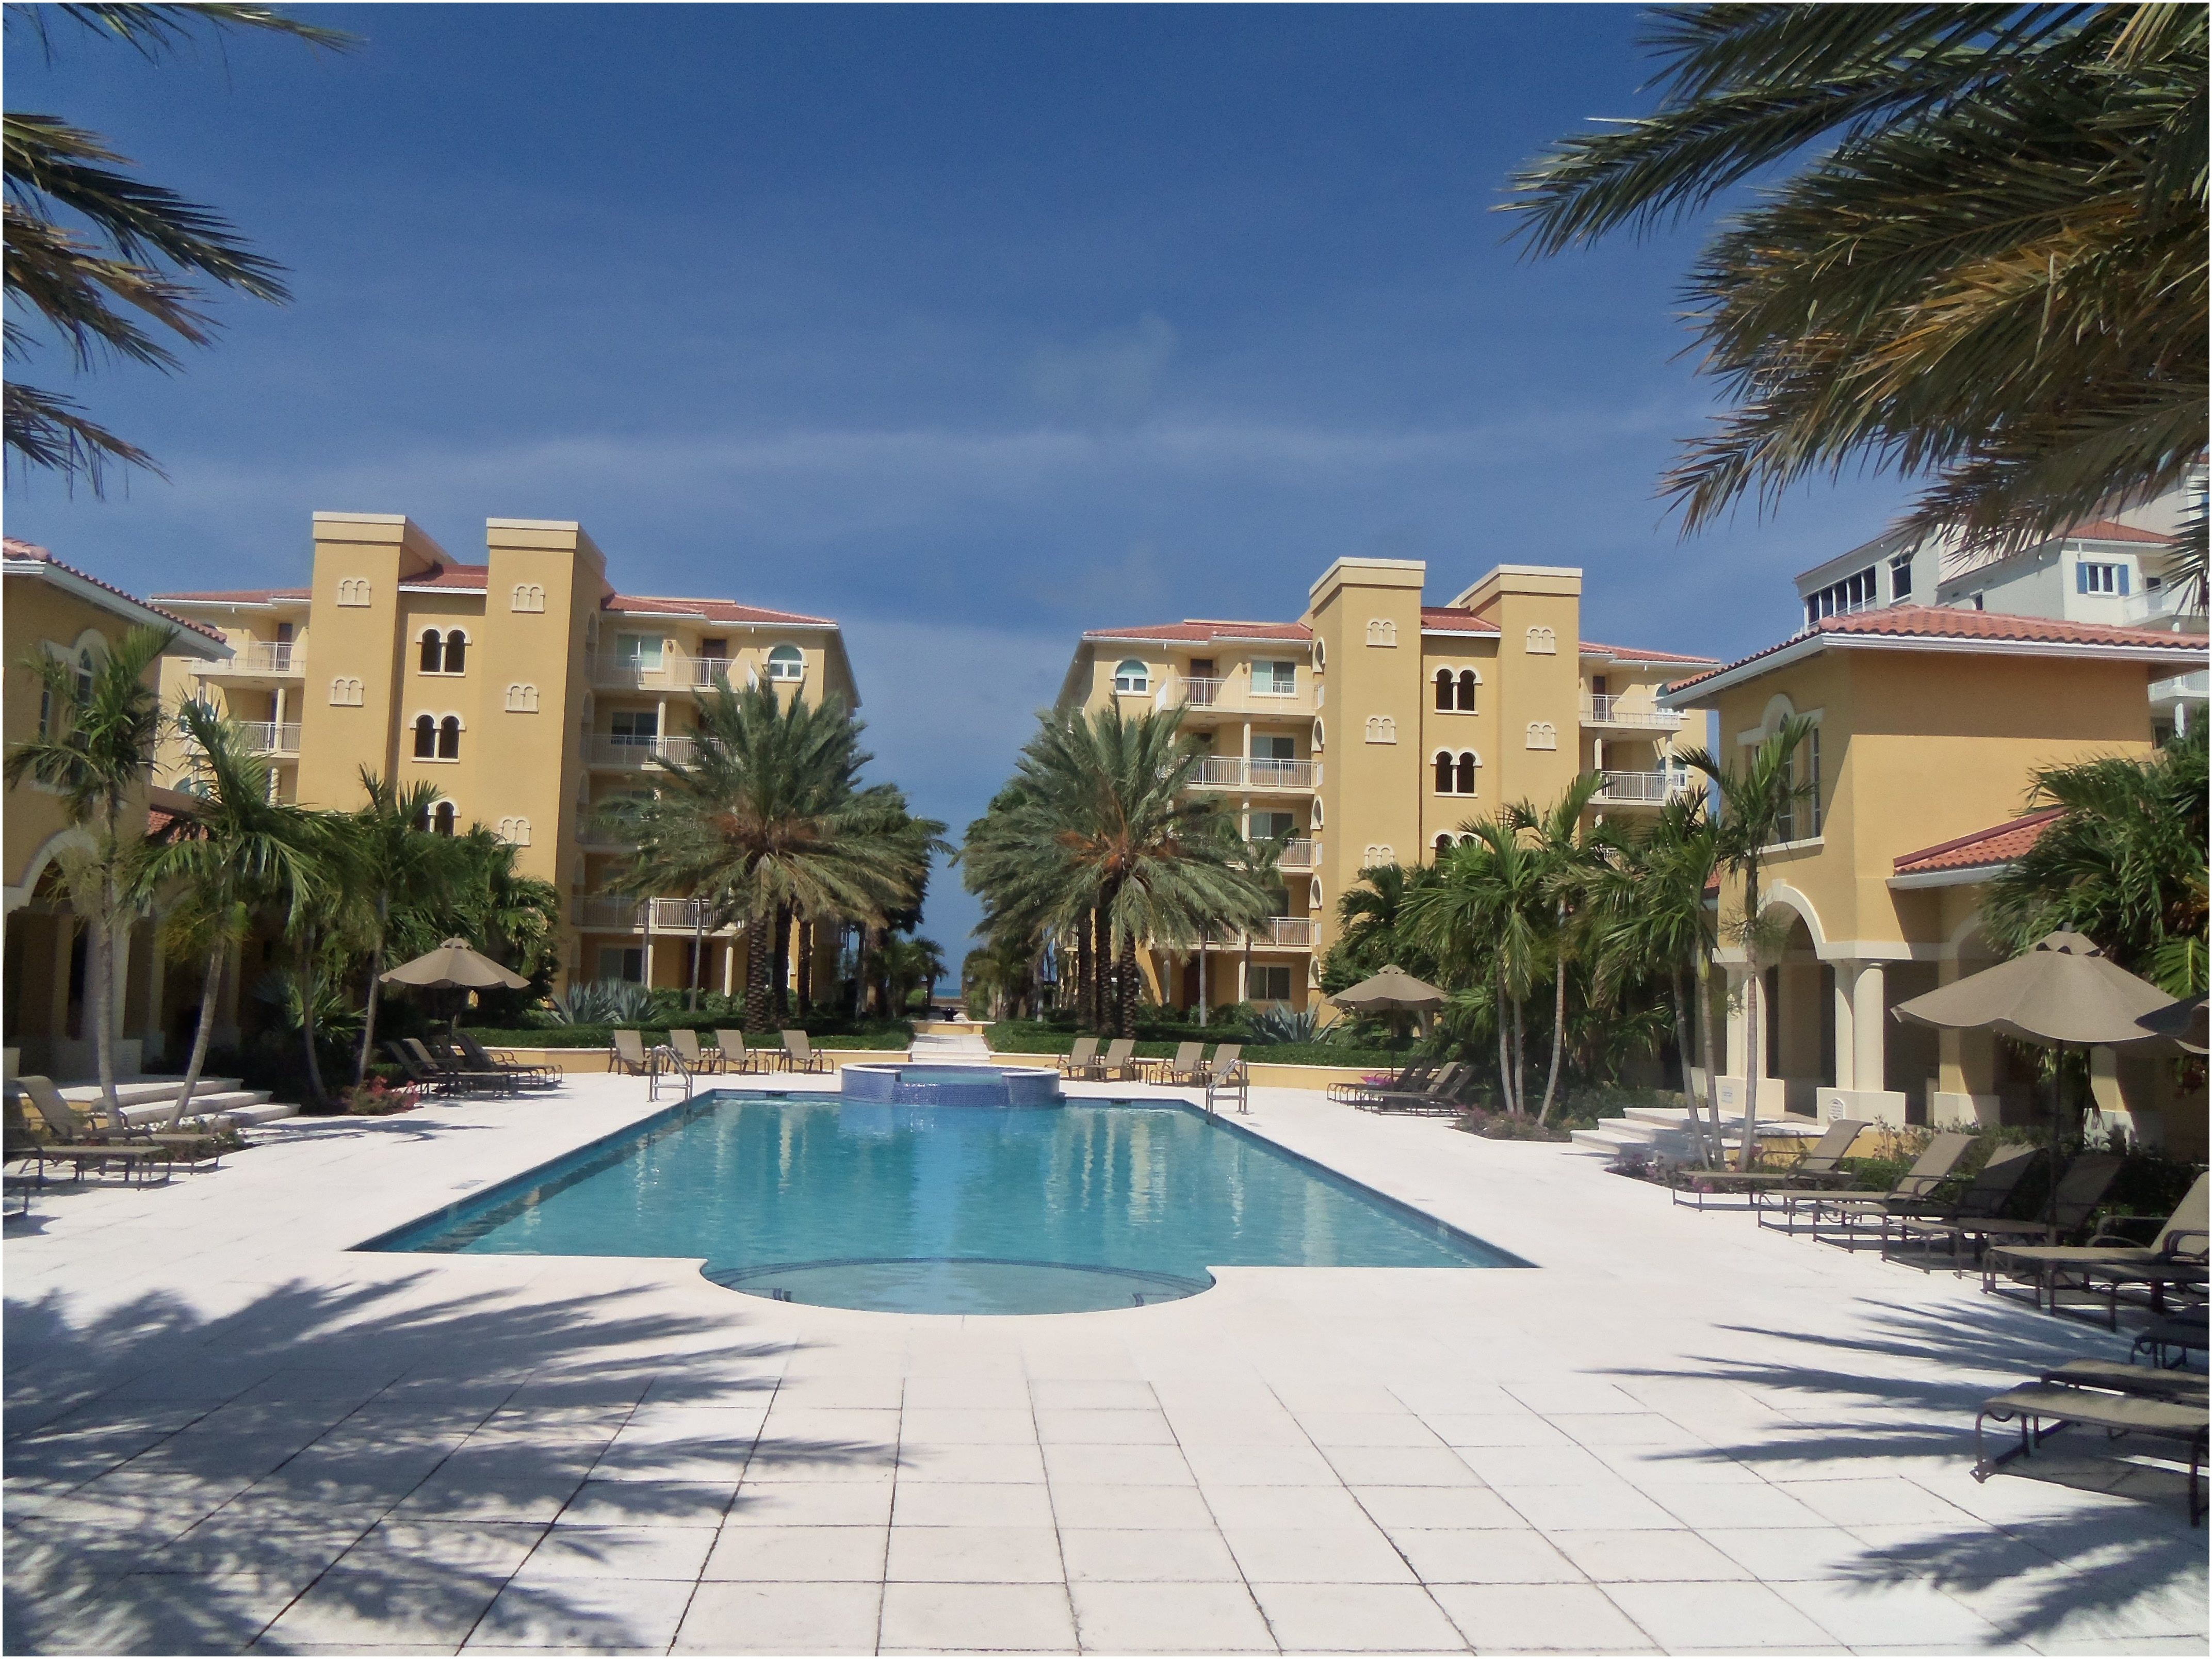 Hotels On Beach In Italy New the Tuscany Resort In Turks and Caicos